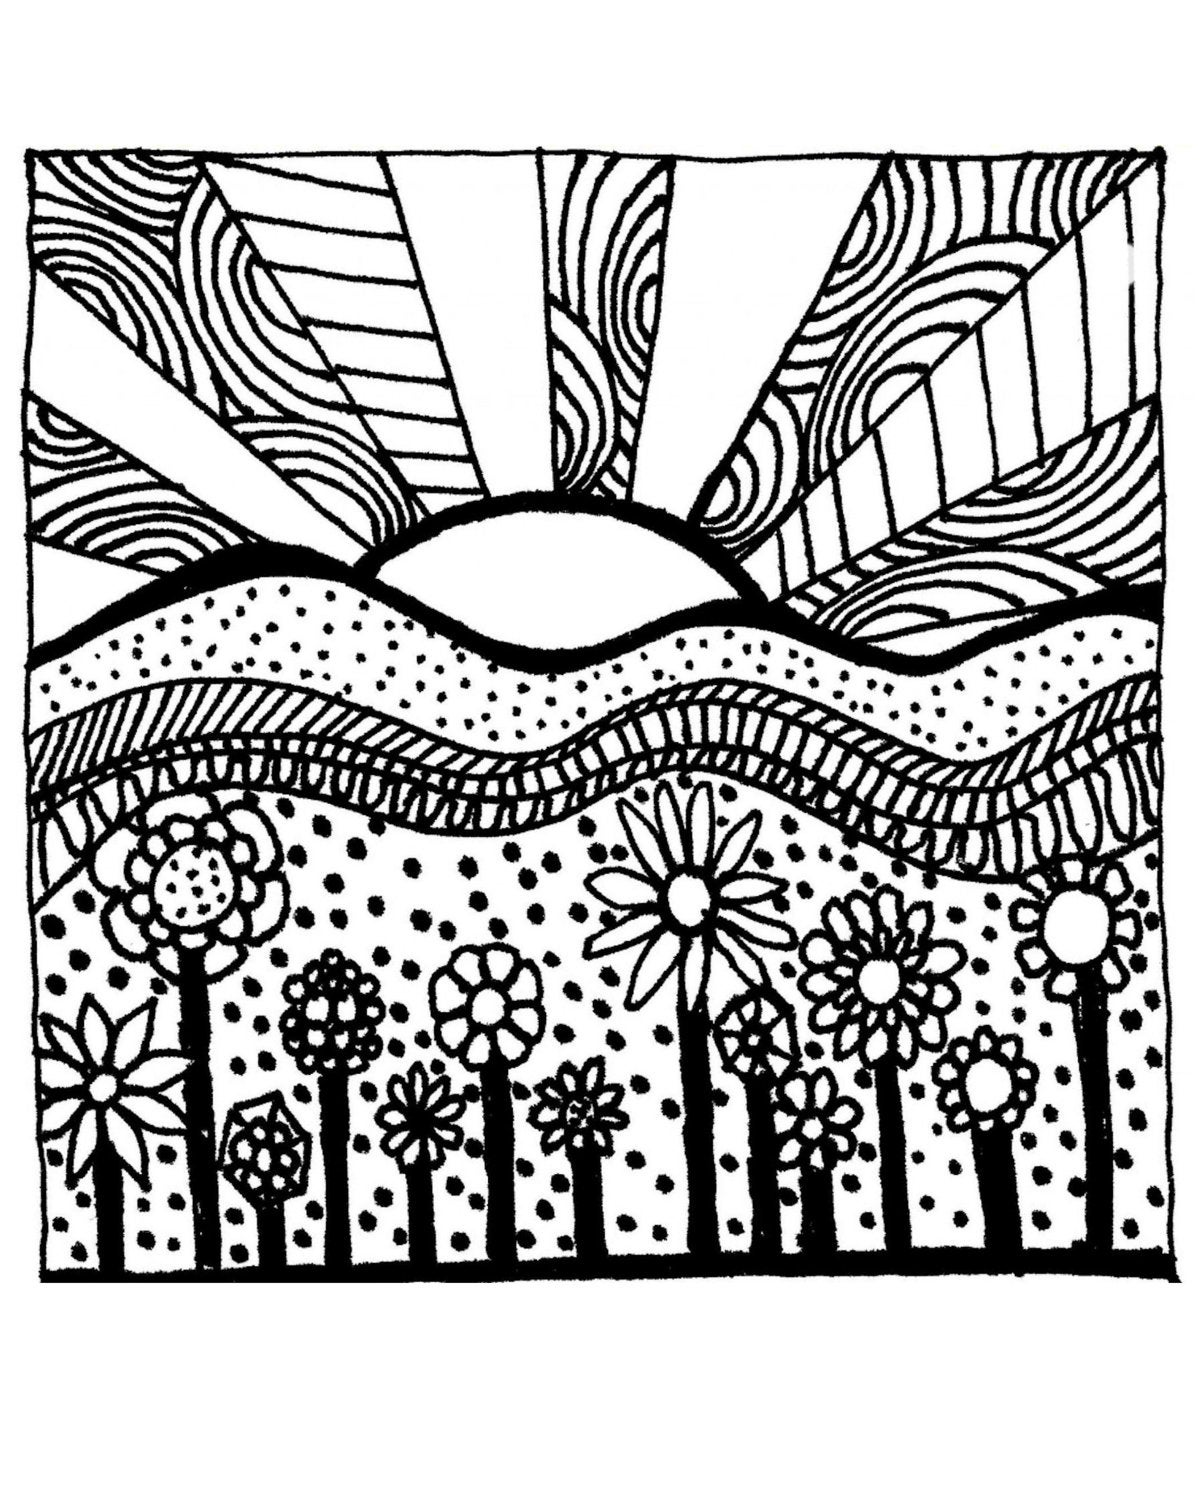 colouring pages for adults online free 20 gorgeous free printable adult coloring pages adult pages colouring free for adults online